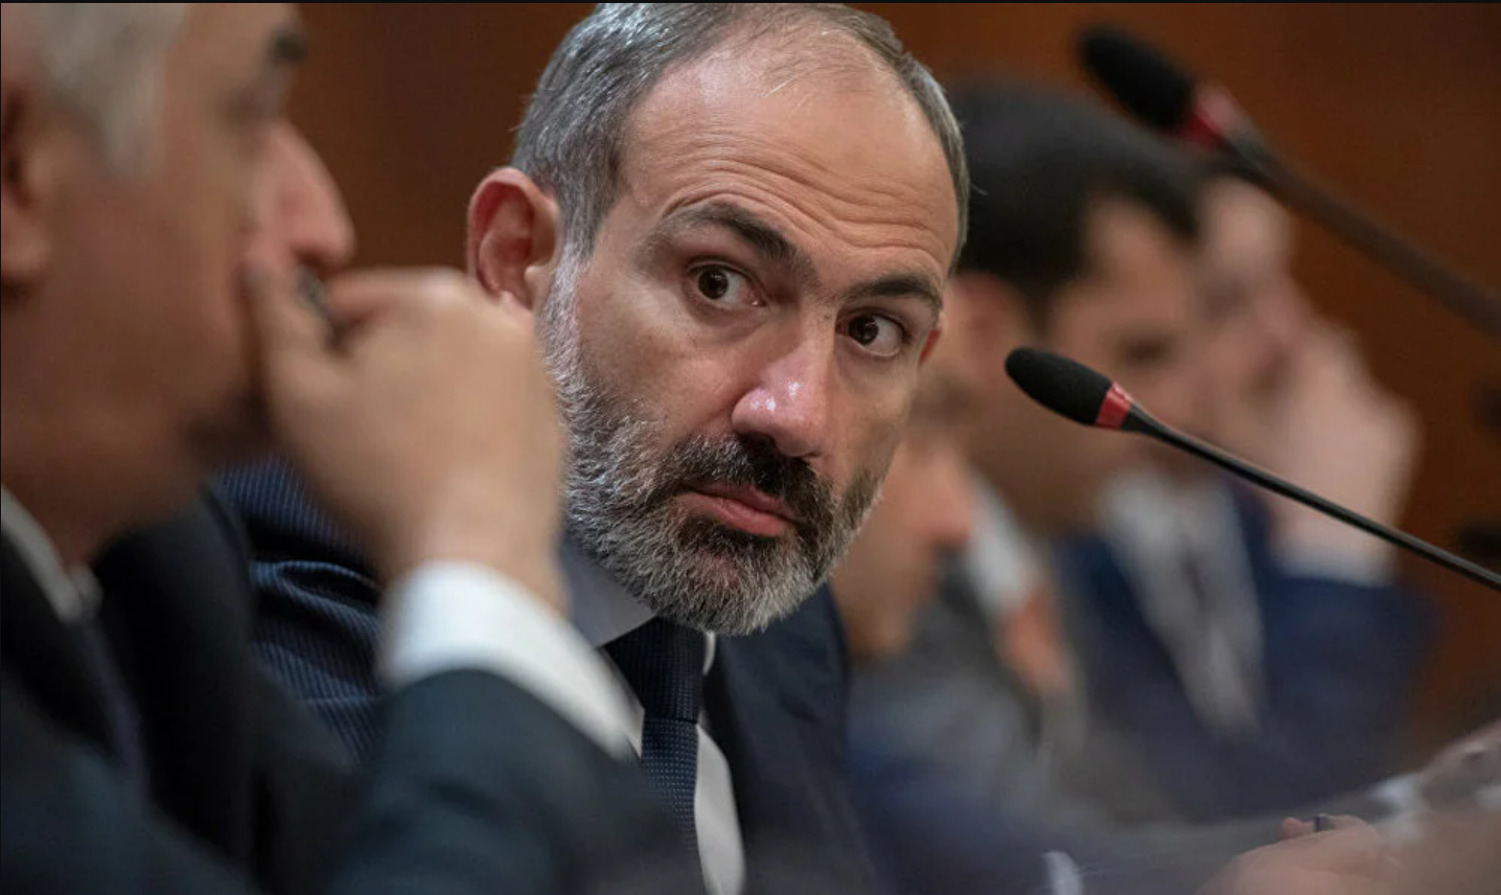 Pashinyan Has Finally Secured Army's Chief Of Staff Resignation. But At What Cost?